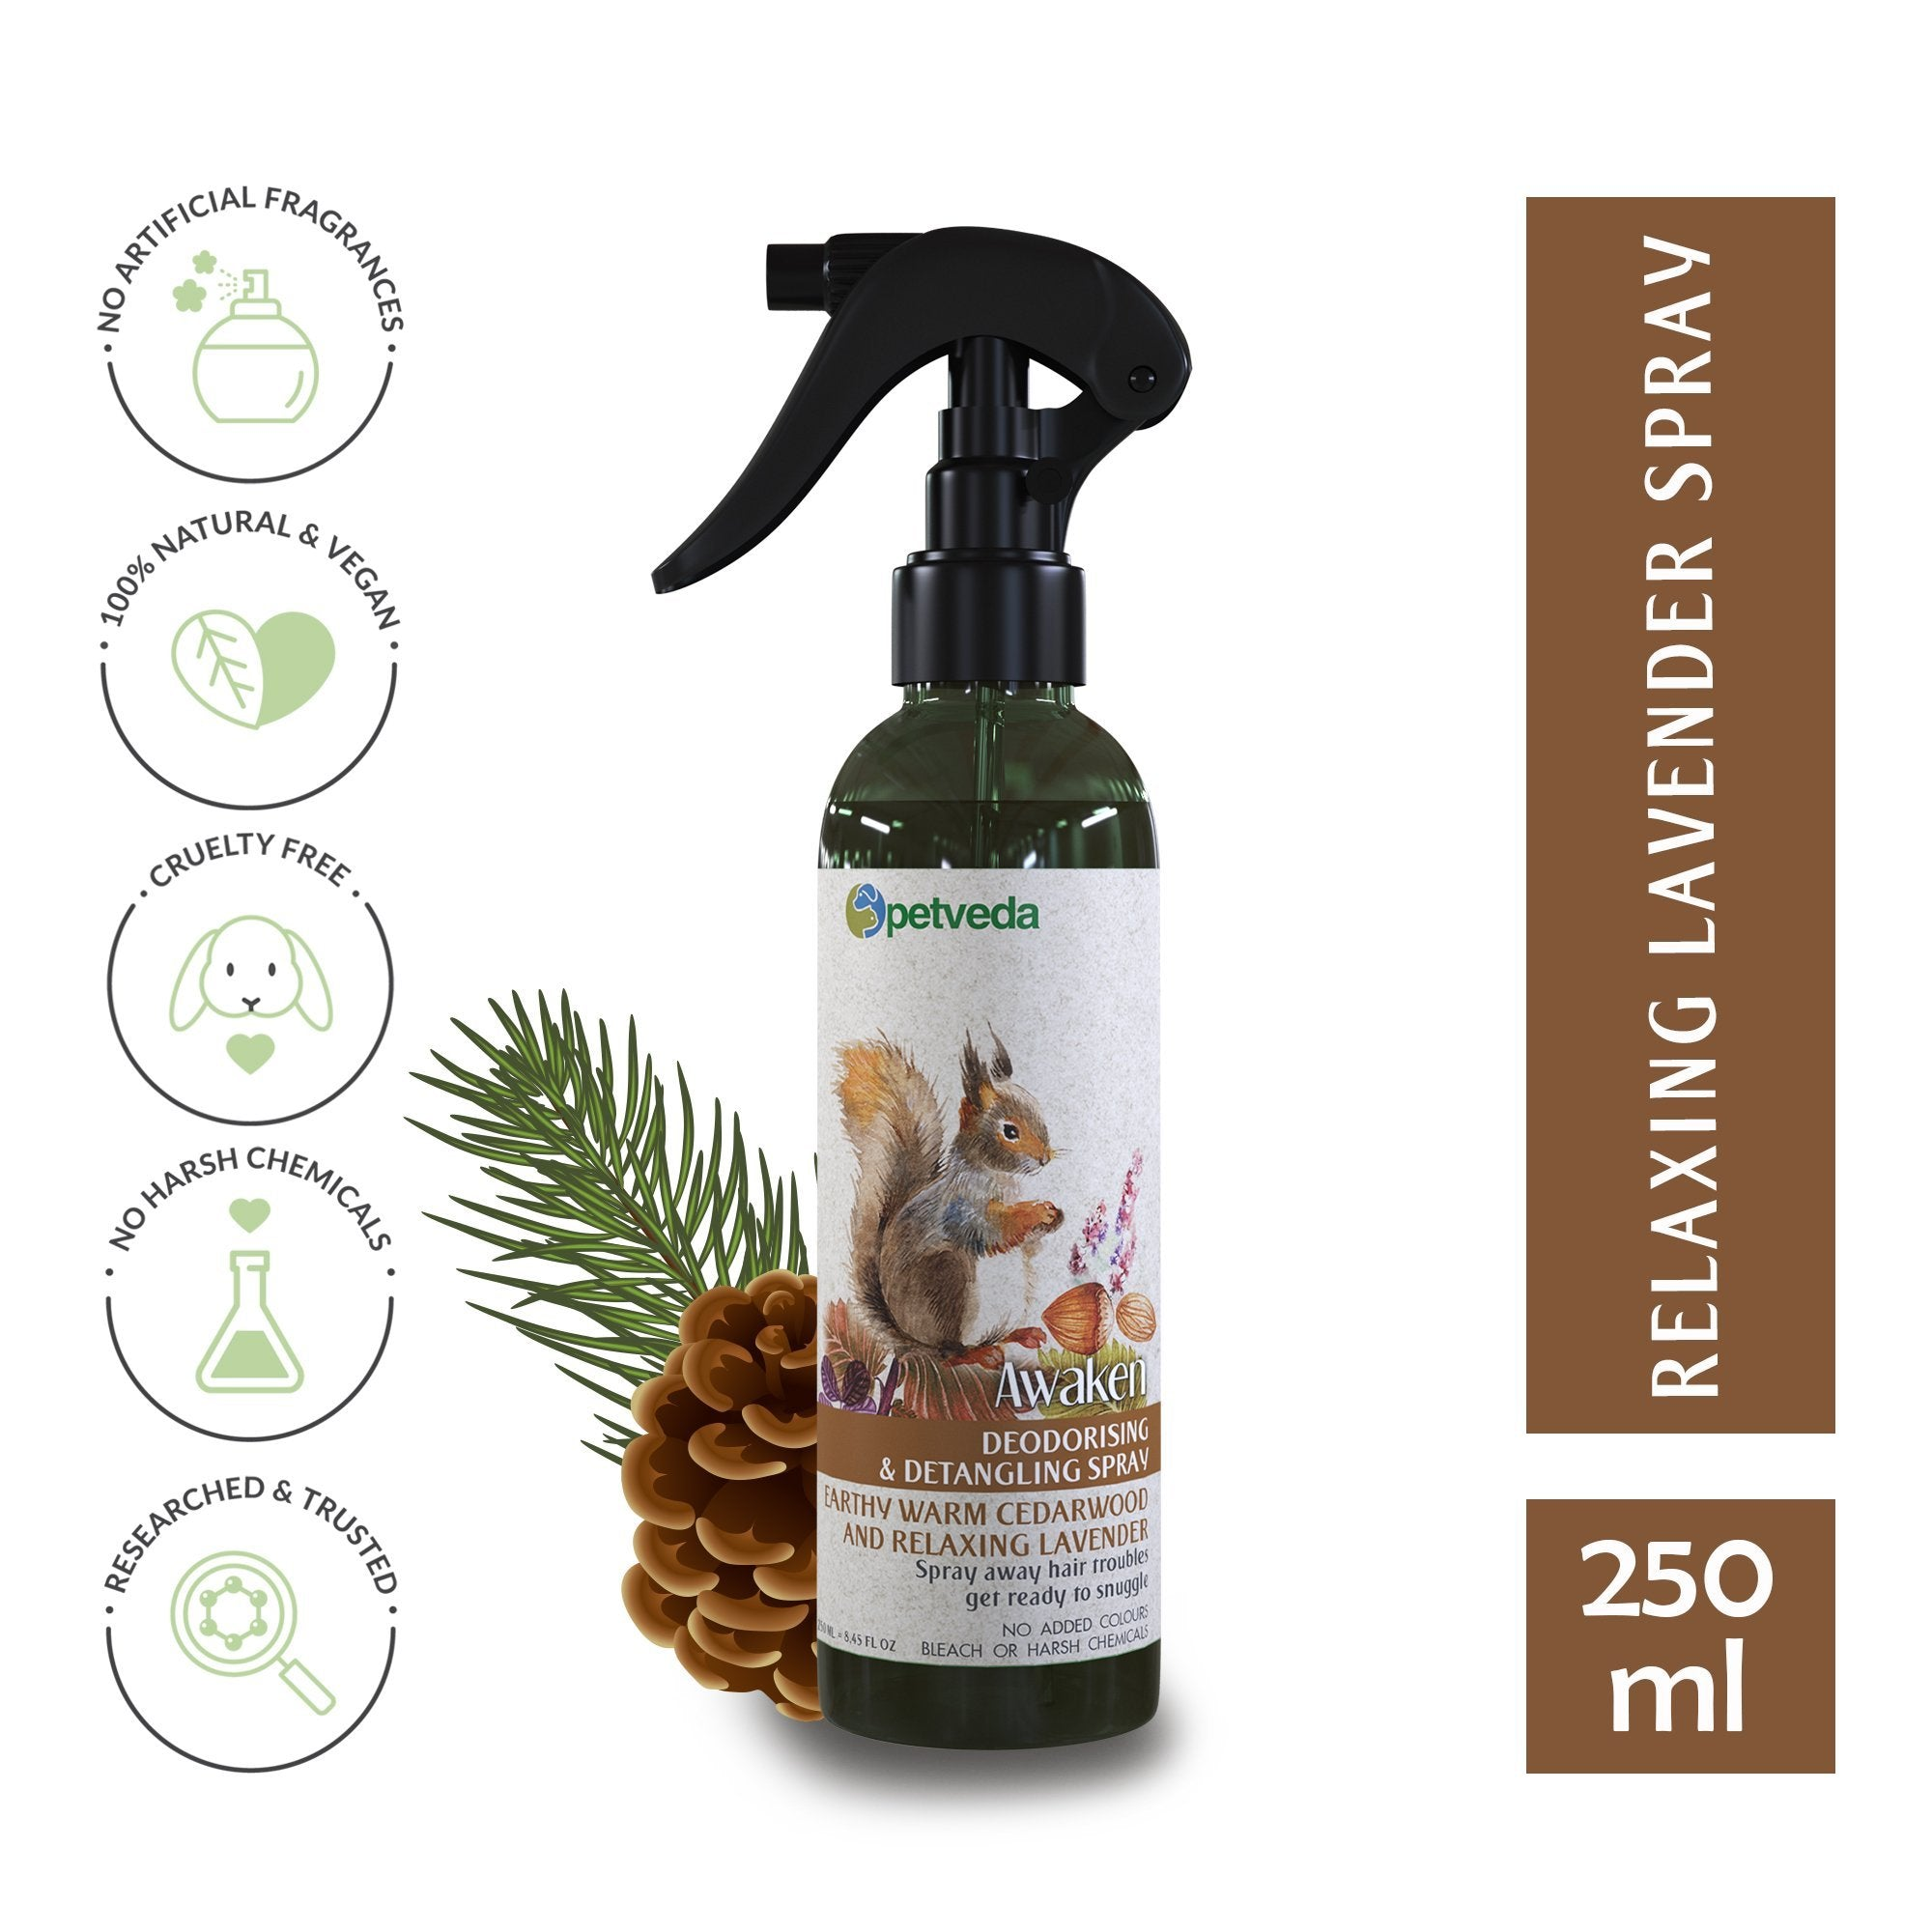 Awaken - Warm Earthy Cedarwood & Relaxing Lavender Deodorizing Spray 250ml